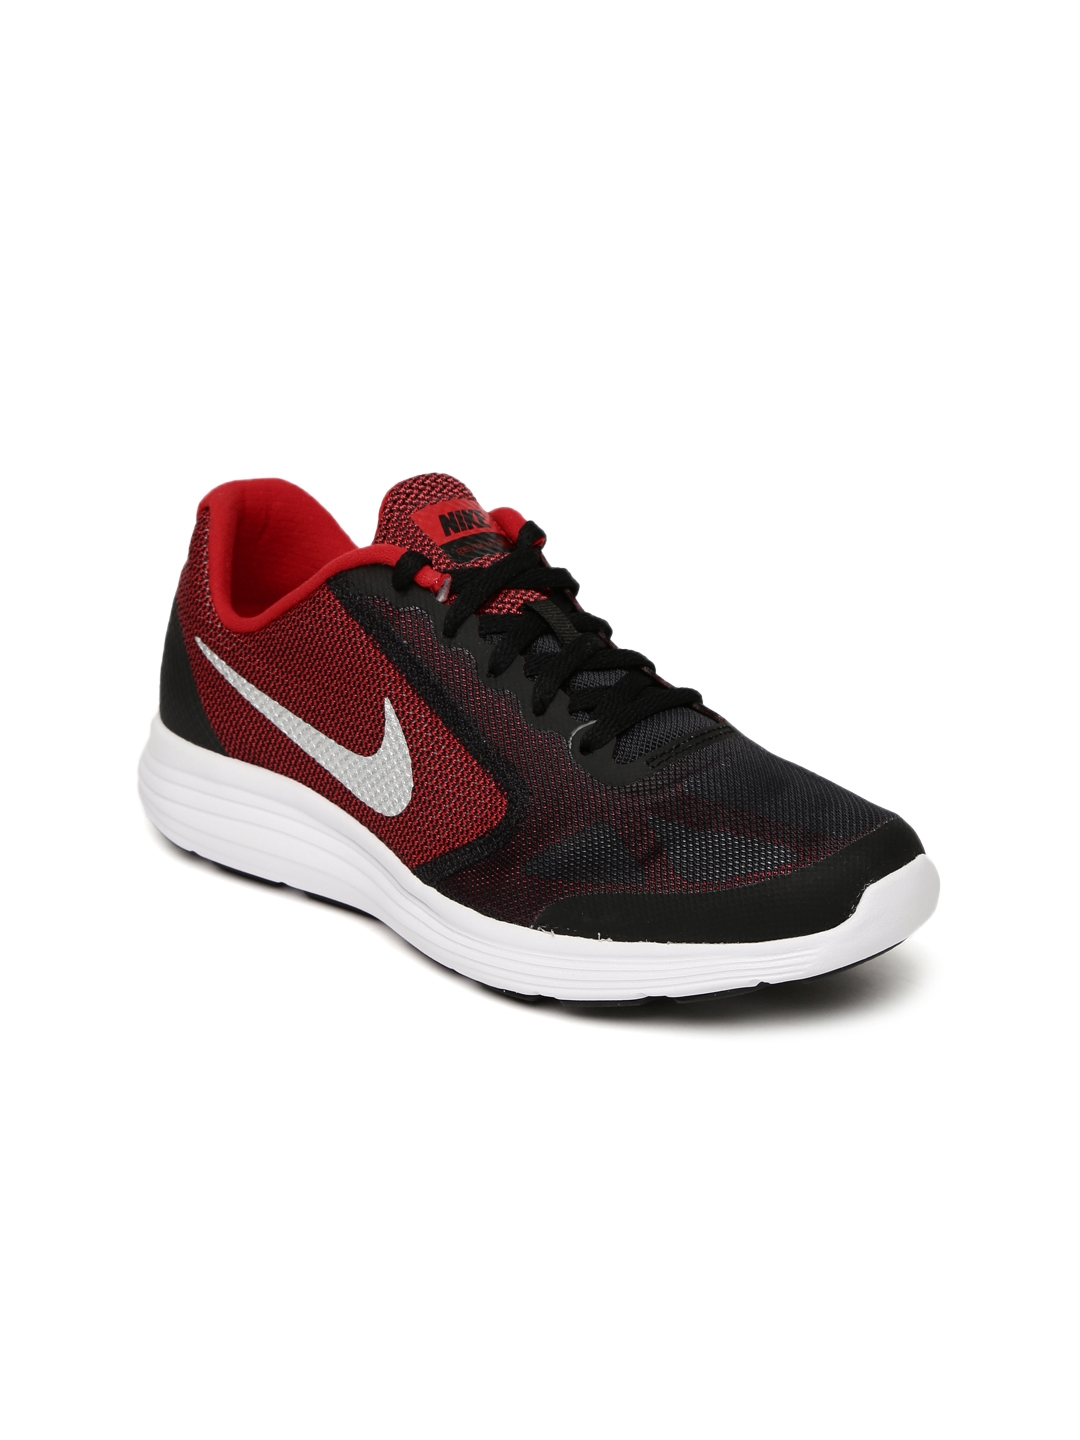 c6e56892a49 Buy Nike Boys Black Revolution 3 Running Shoes - Sports Shoes for ...